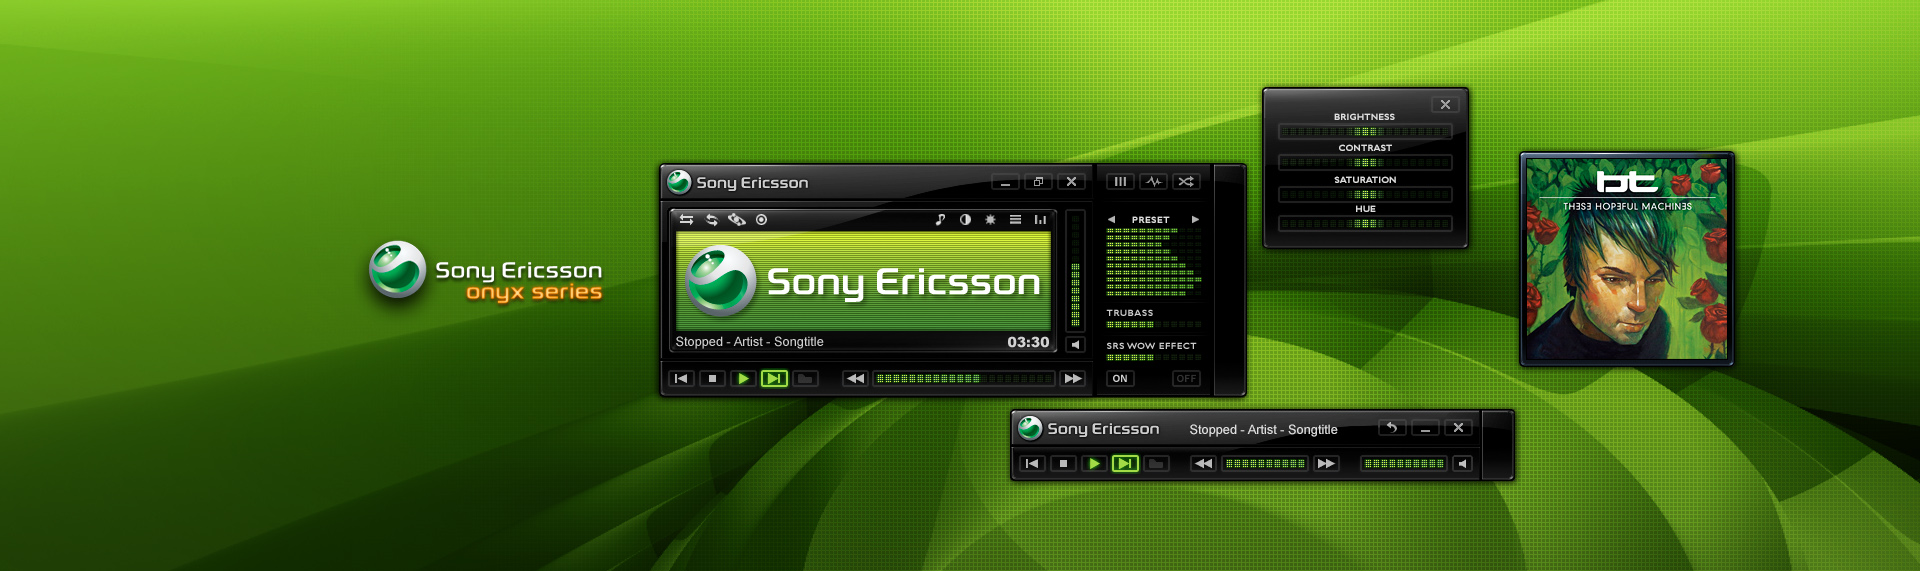 Sony Ericsson Onyx Series  Client: Sony Ericsson  Sony Ericsson commissioned The Skins Factory to design and develop a highly versatile Windows Media Player 11 skin, featuring ultra-thin modes for audio and video in 6 color-bursting styles. Each vibrant theme, fully compliments a corresponding chromatic theme of the Sony Ericsson Onyx Series Windows desktop theme powered by Hyperdesk. Copyright. Sony Ericsson Mobile Communications AB. All Rights Reserved.